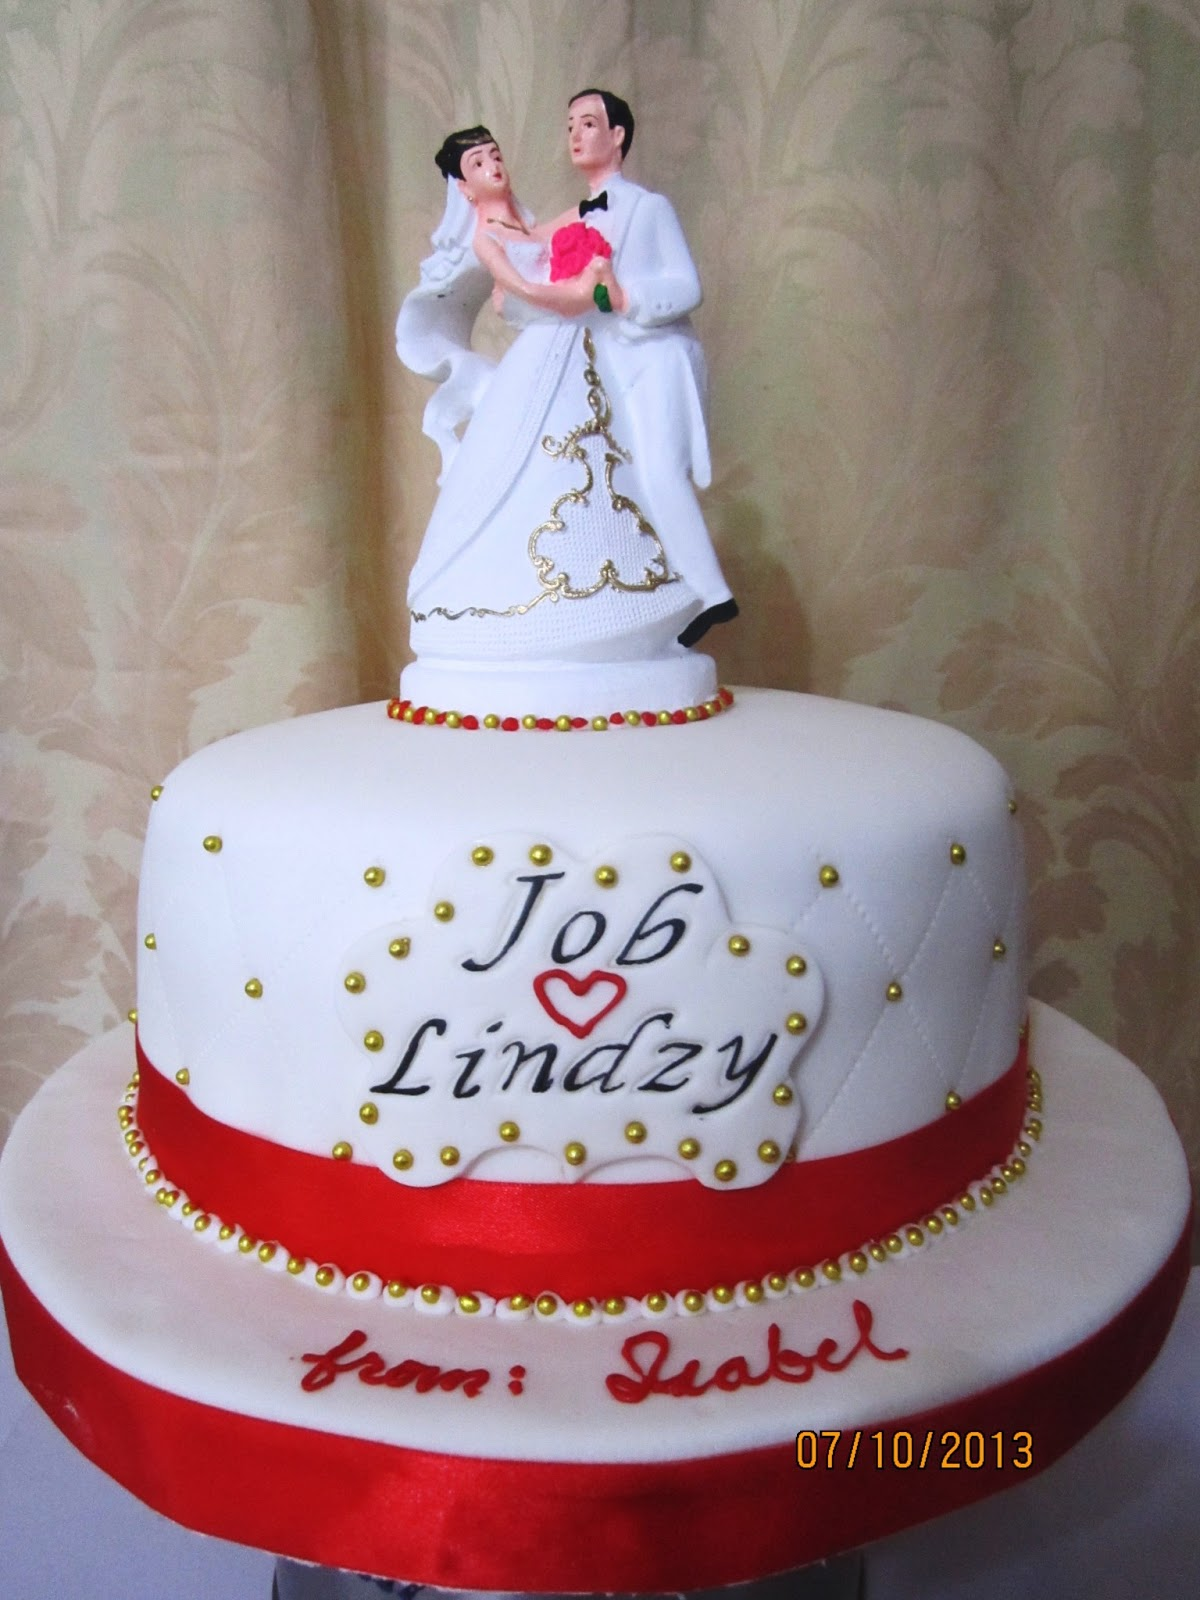 red/gold wedding cake | JnyJ (j-nee-j) cakes